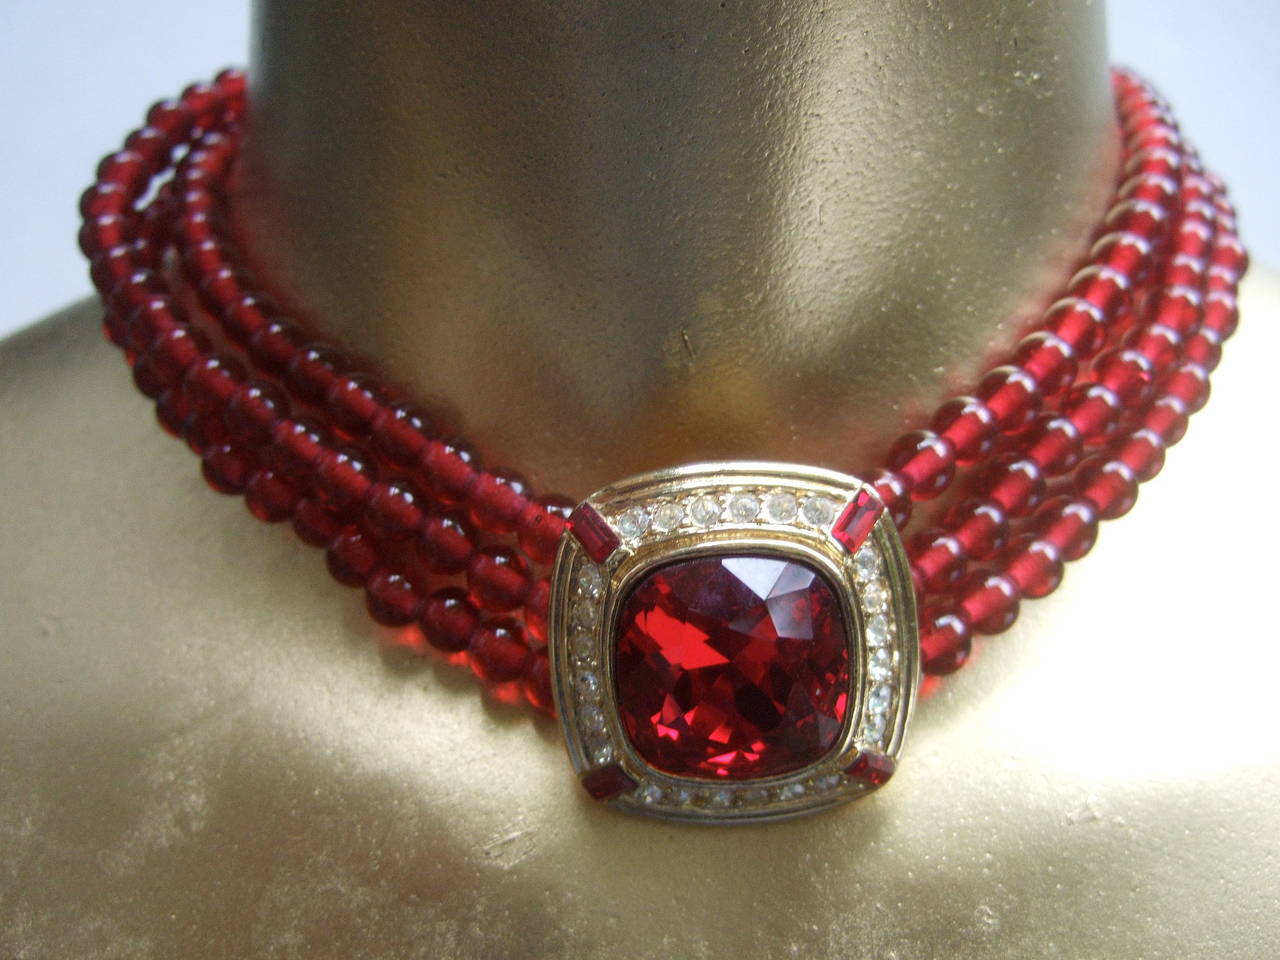 Trifari Elegant Ruby Glass Beaded Choker Necklace c 1980 In Excellent Condition For Sale In Santa Barbara, CA